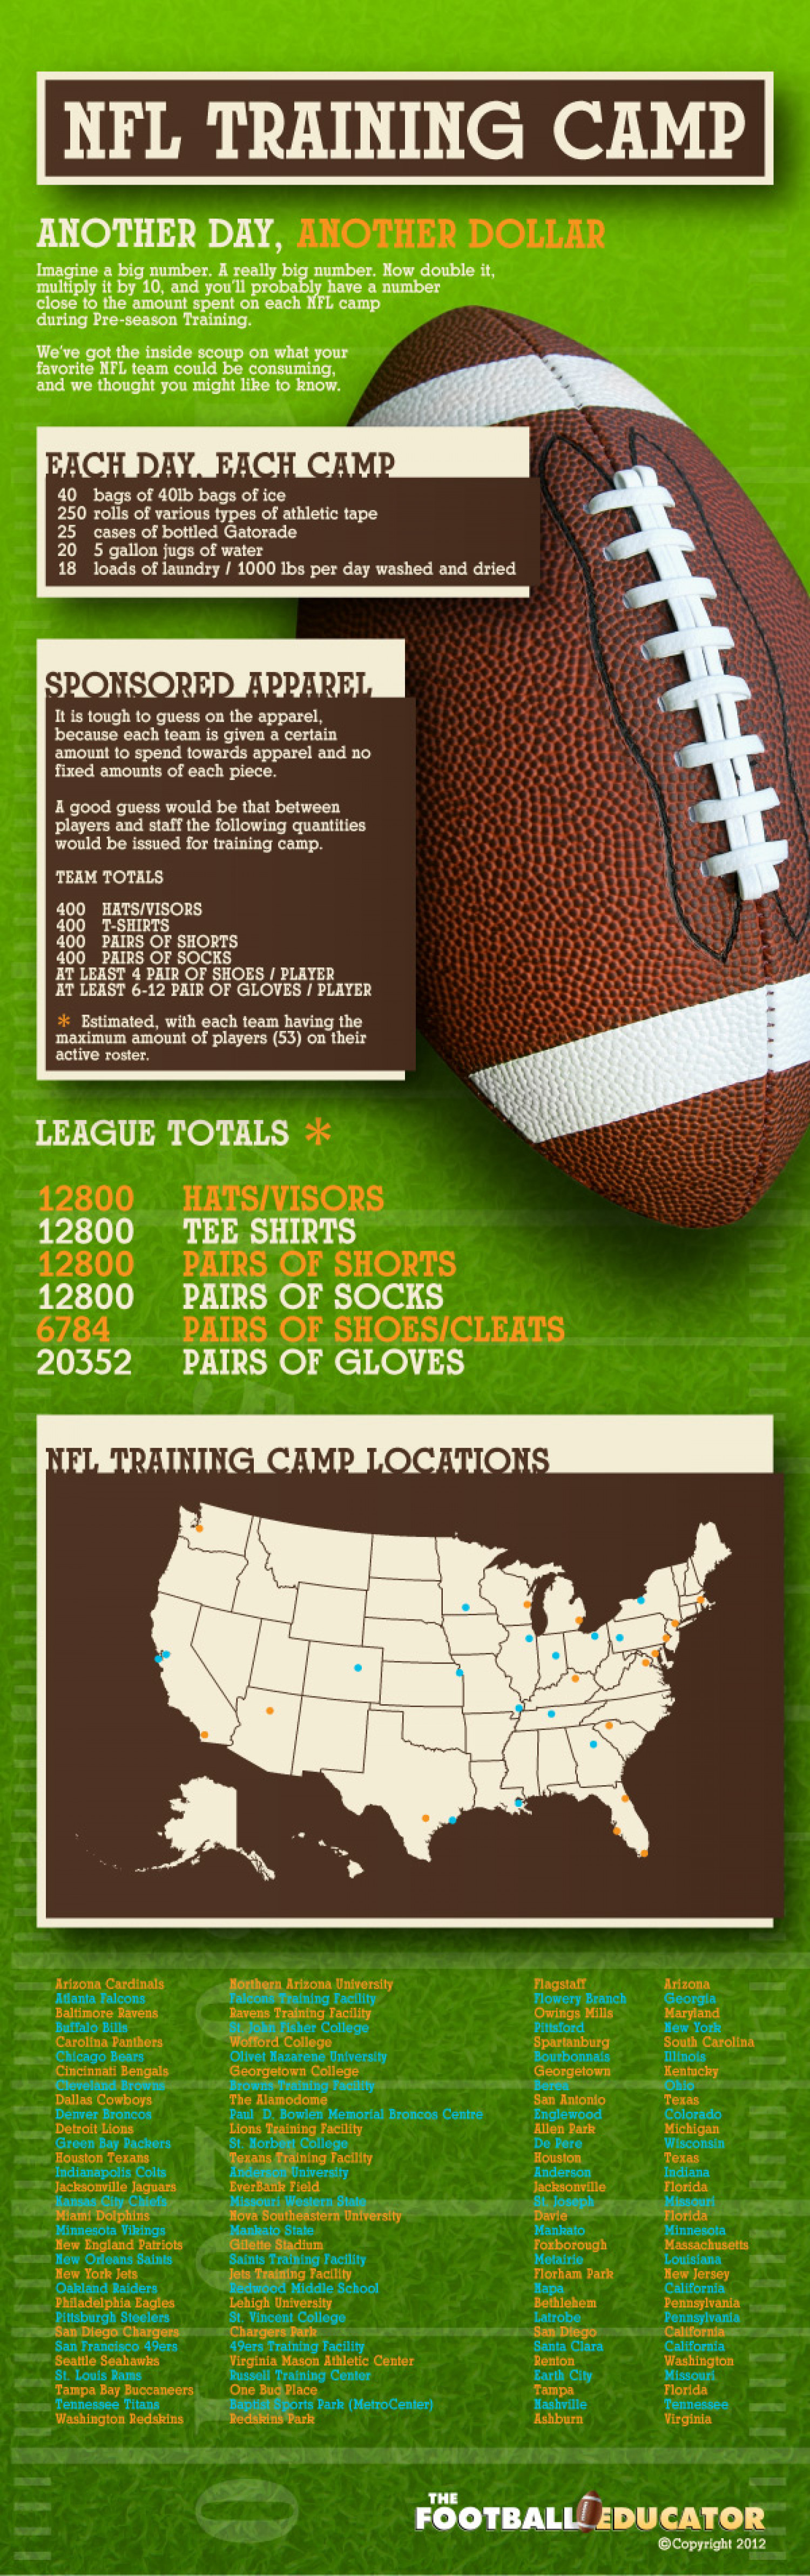 NFL Training Camp: Another Day, Another Dollar Infographic